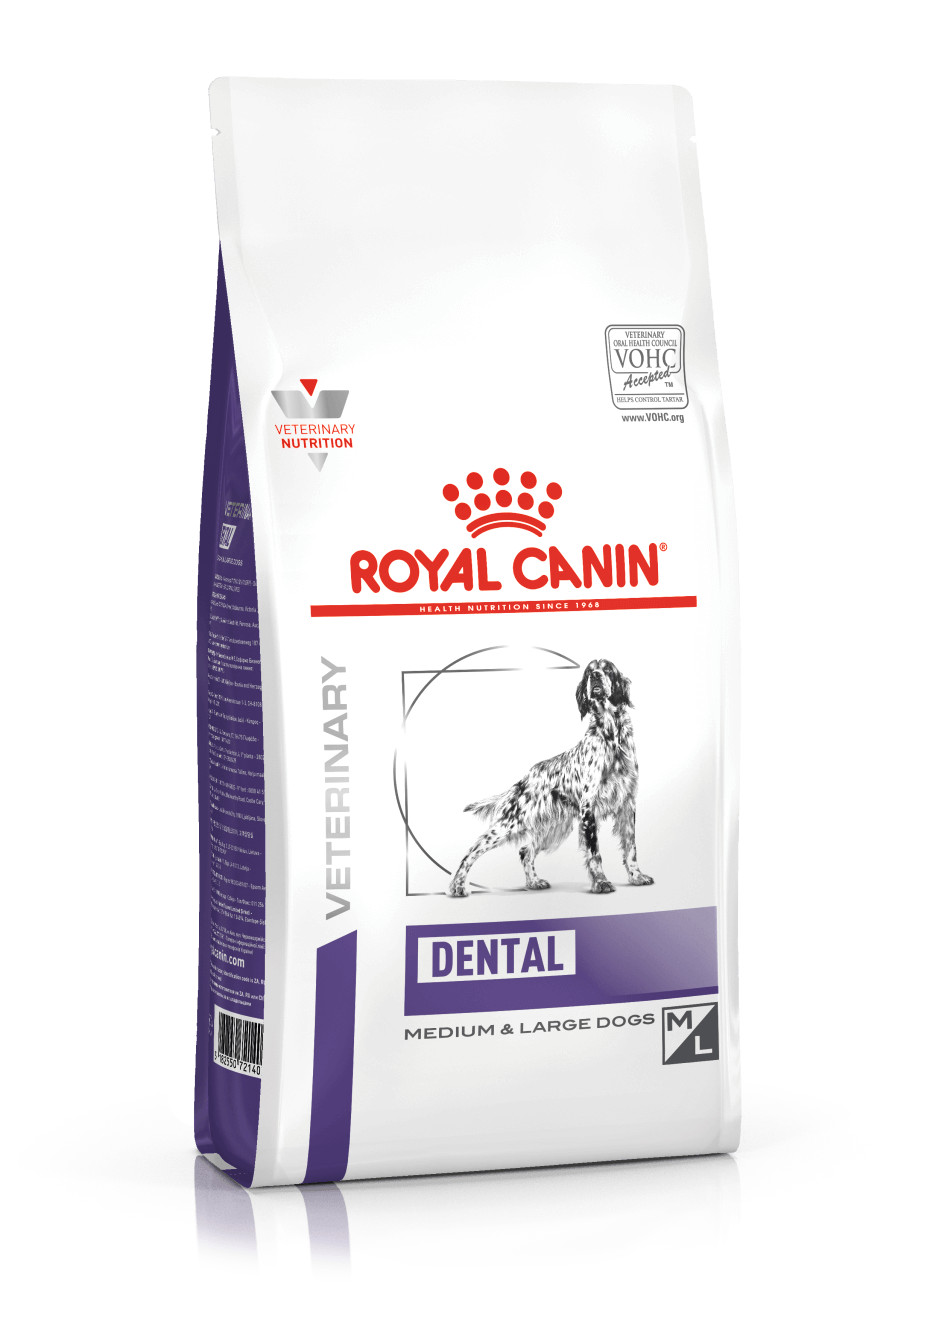 Royal Canin Veterinary Dental Medium & Large Dogs pour chien